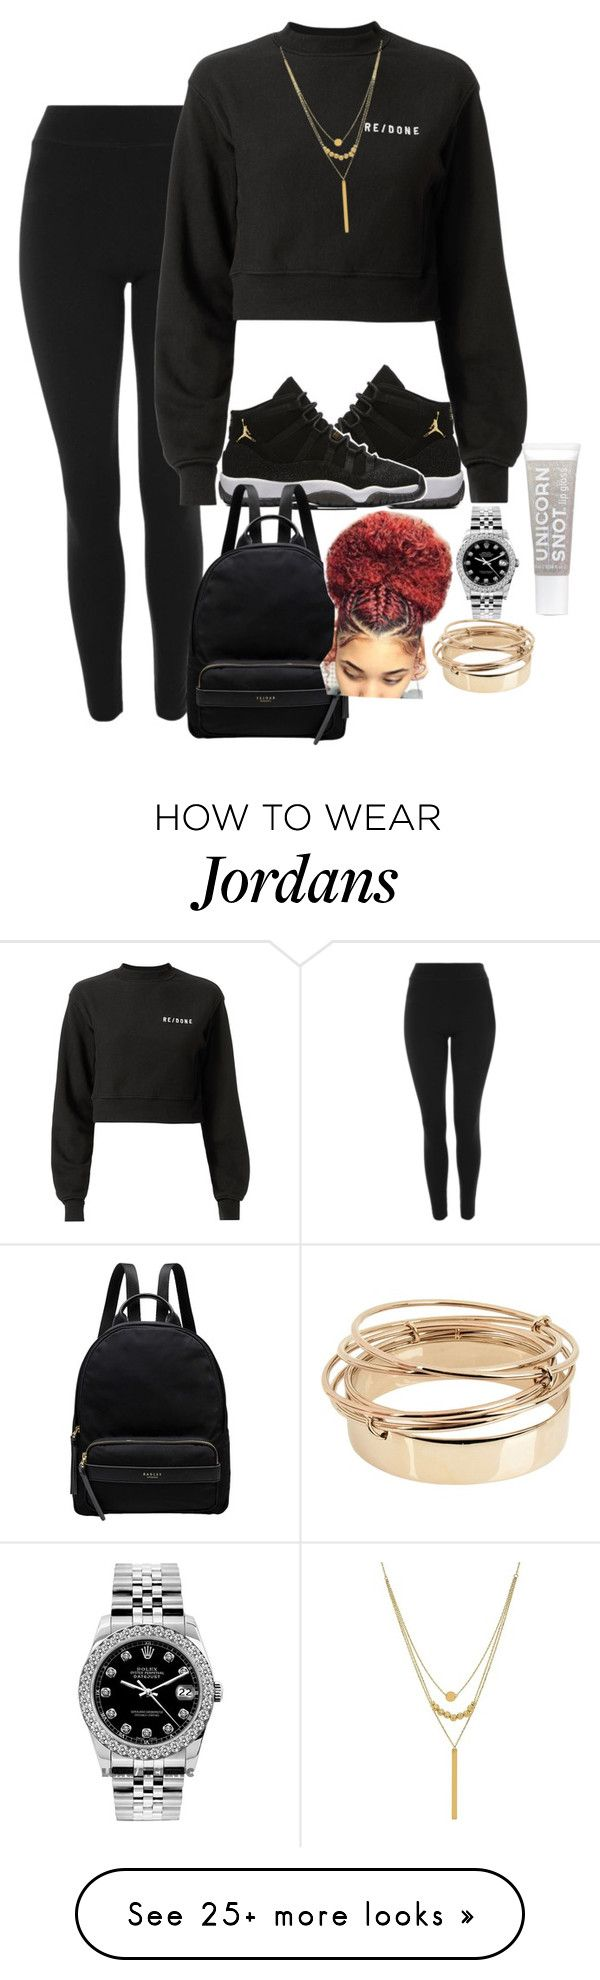 """""""⏹️"""" by colourmejayy on Polyvore featuring Topshop, NIKE, RE/DONE, Radley, Lord & Taylor, Rolex and Valentino"""